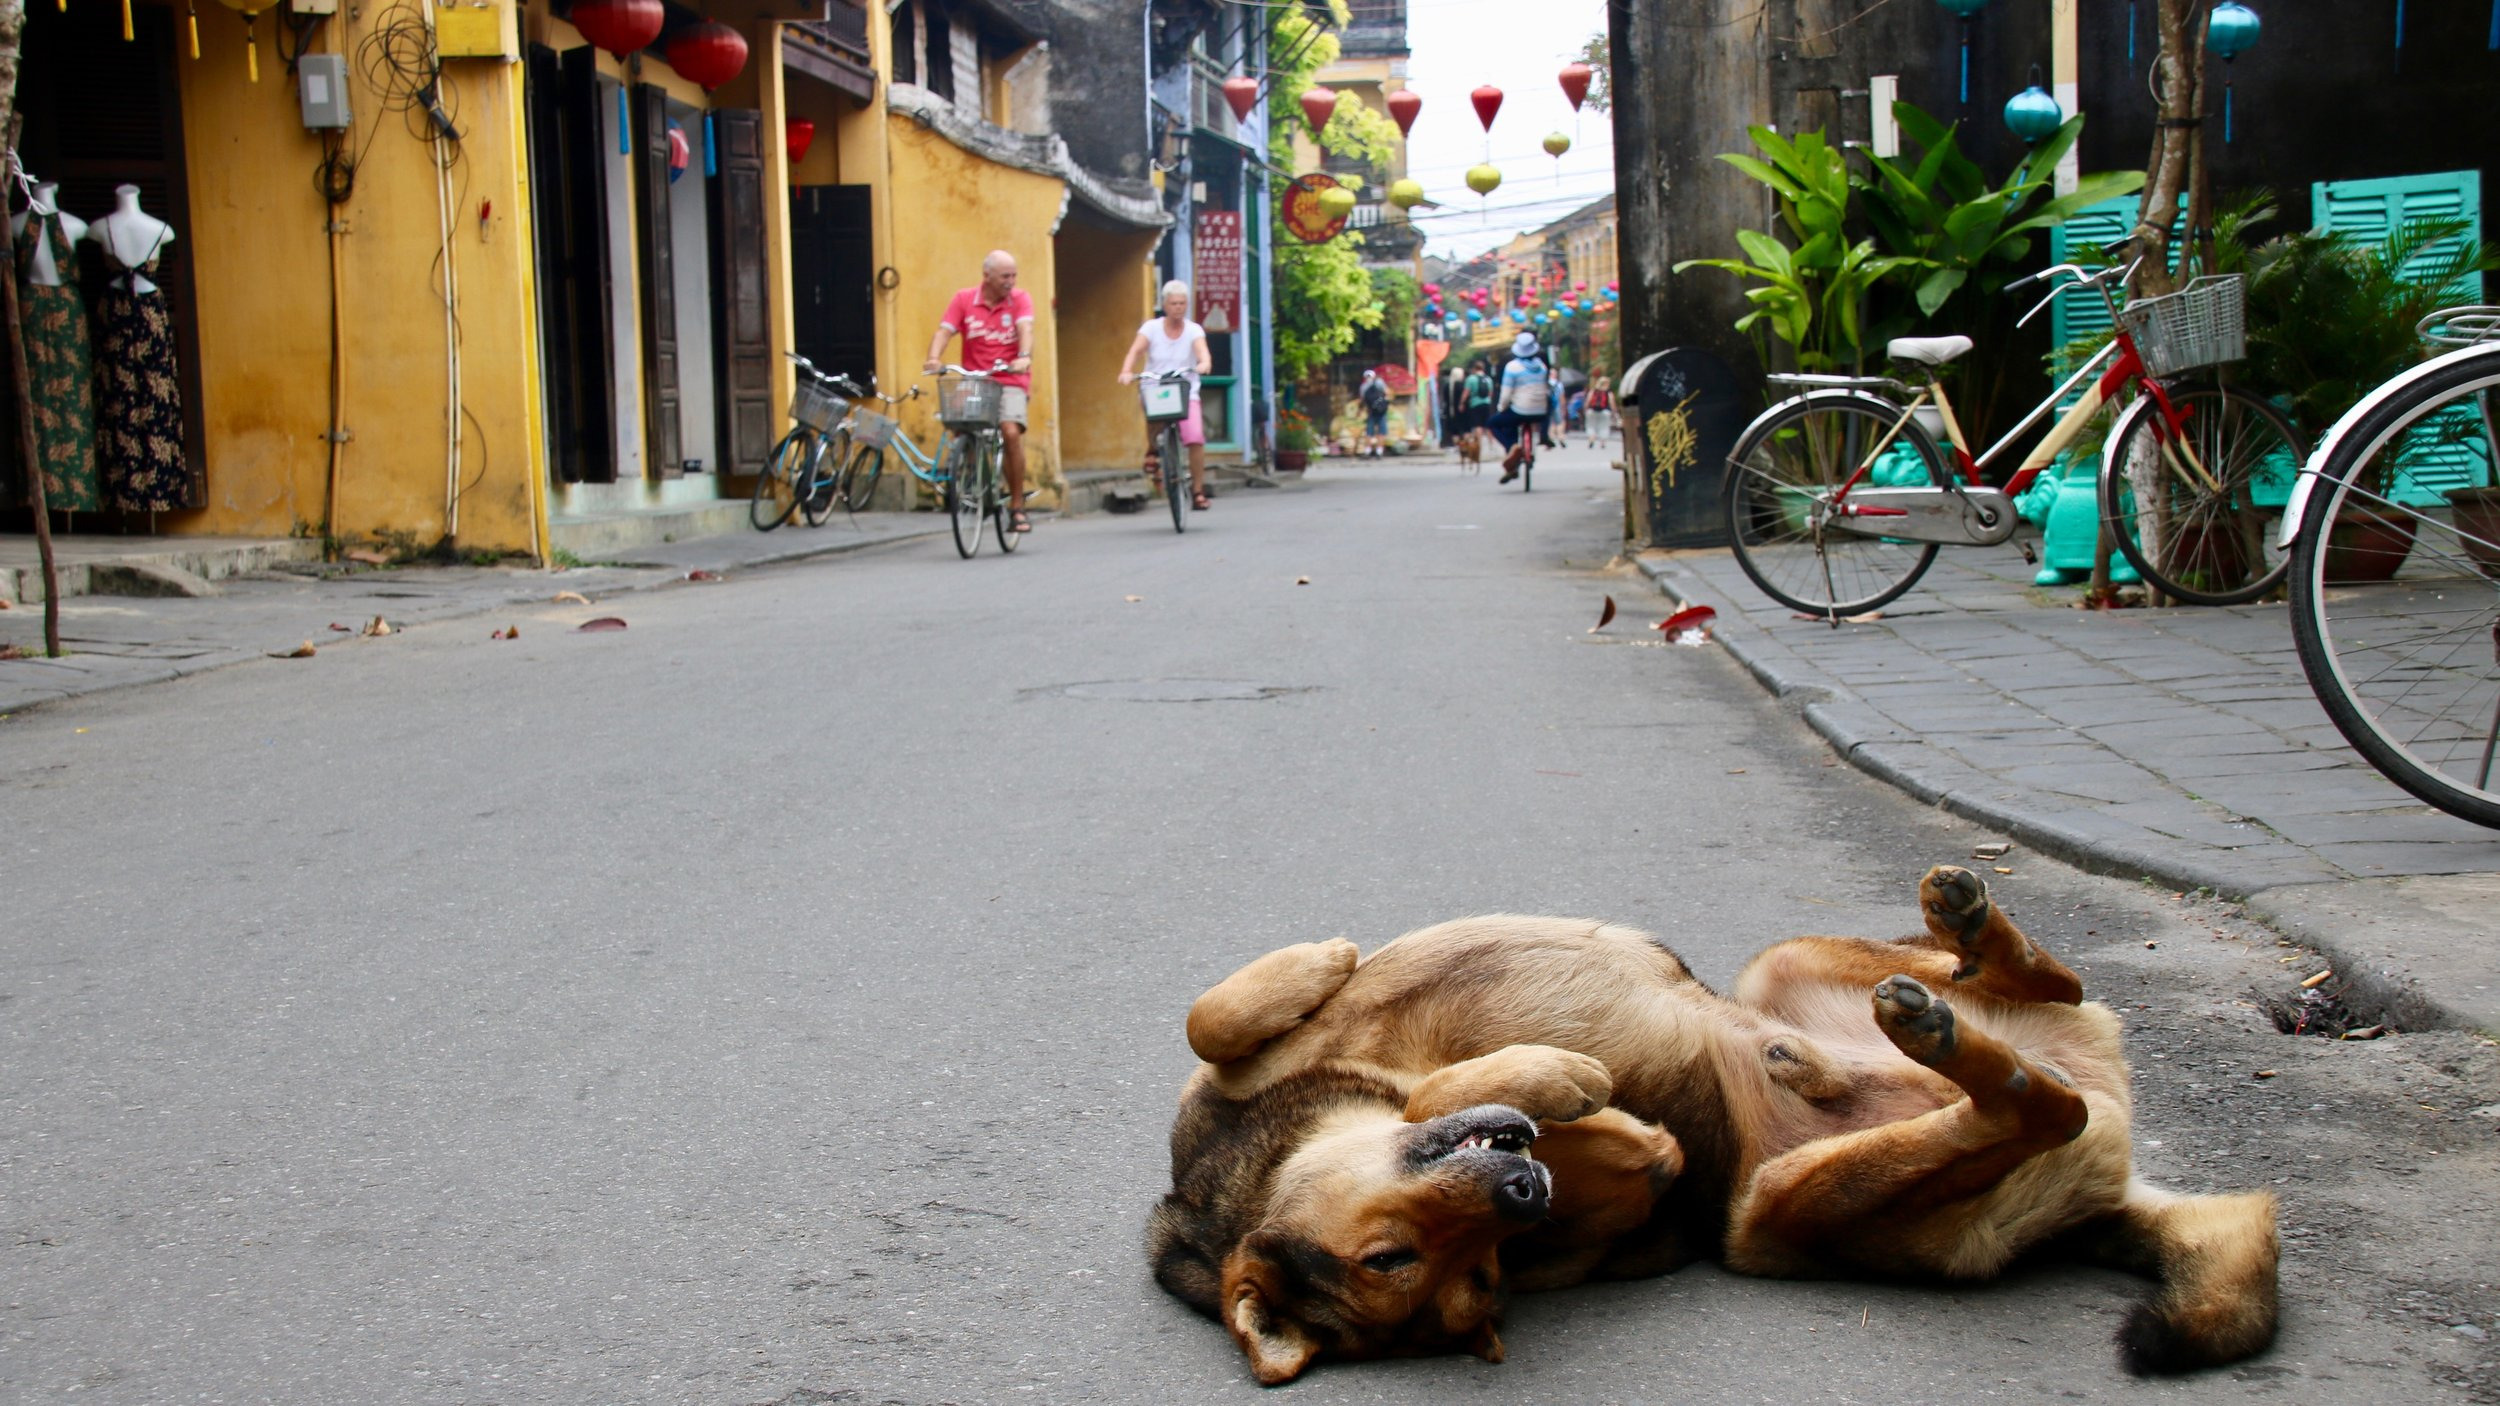 Dogs of Vietnam: trading man's best friend for meat